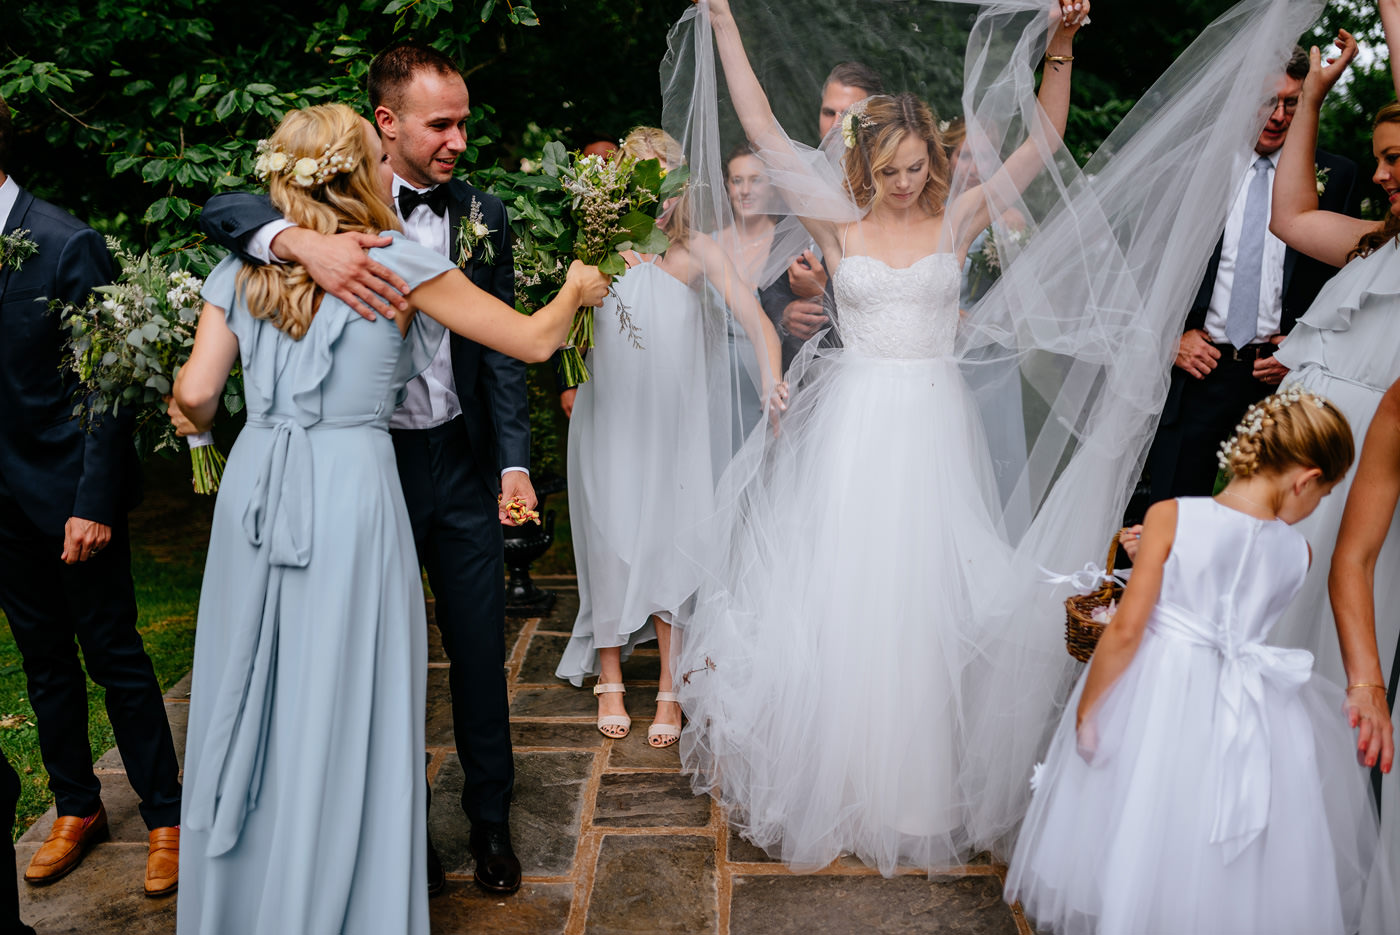 funny candid wedding moment